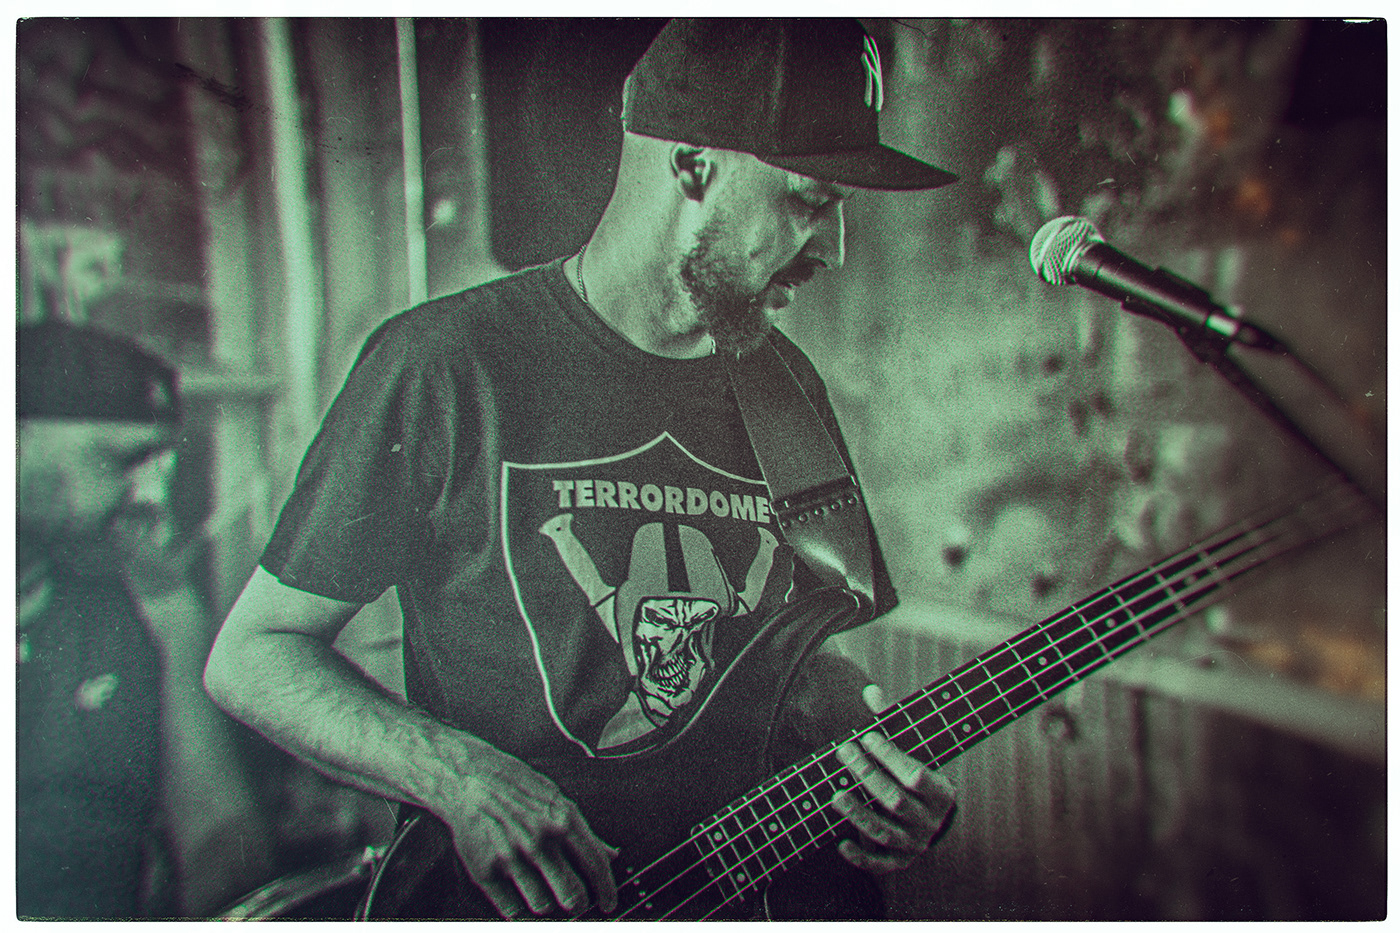 band concert cracow Event gig Hardcore music Photography  poland terrify